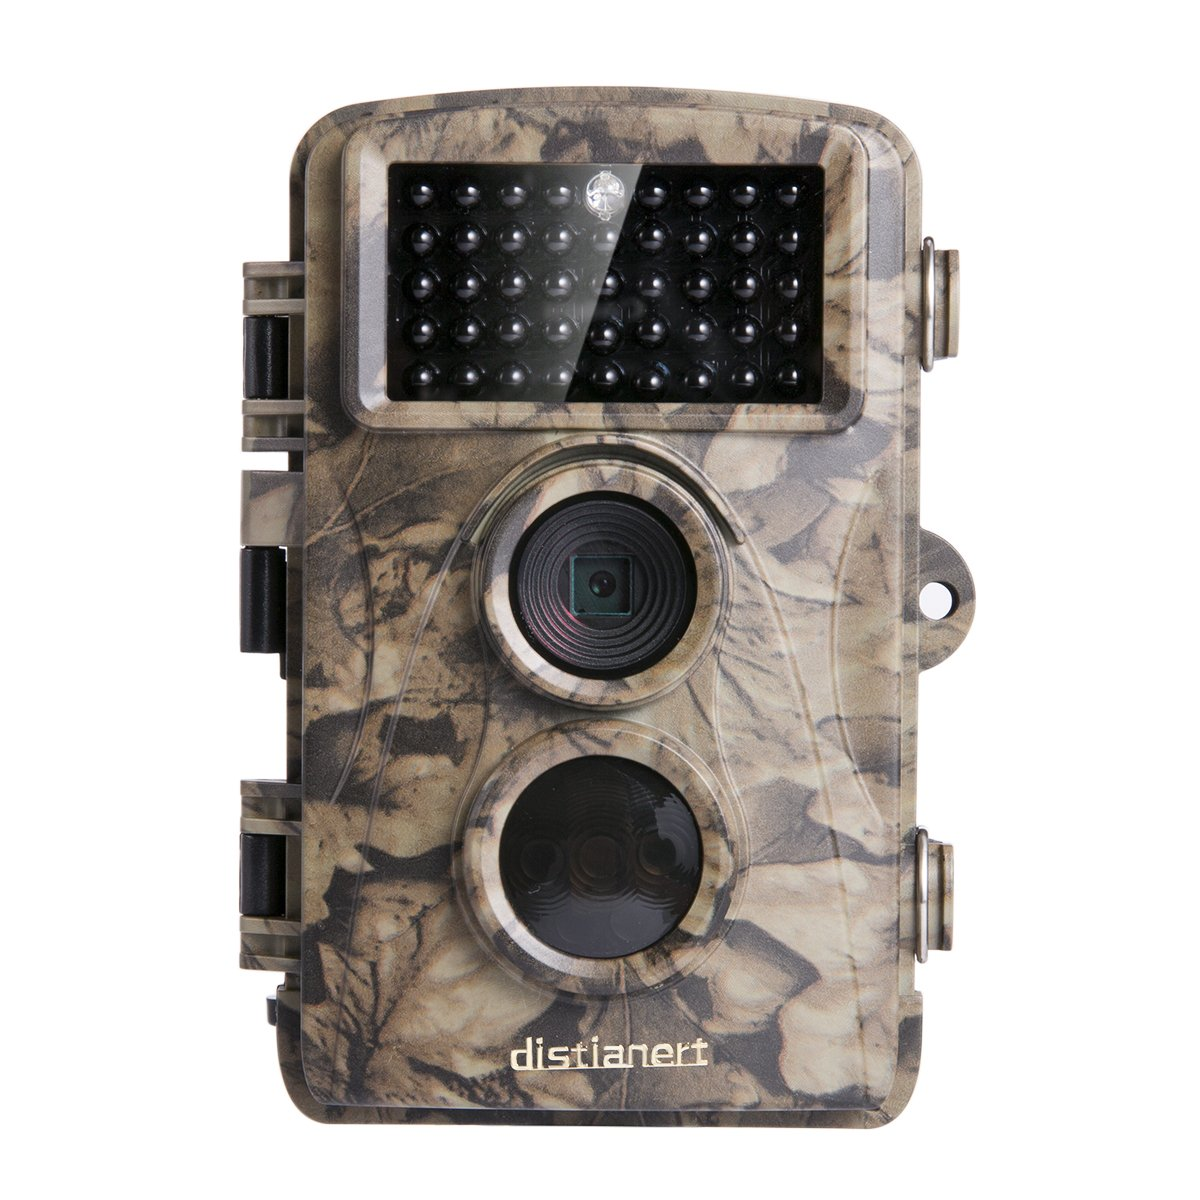 distianertトレイルカメラ12 MP 720p赤外線ゲーム& Deerカメラ低グローNight Vision 65 ft防水ip56 with 34pcs 850 nm IR LED 2年保証 B0762N99NH 12MP 720P 12MP 720P